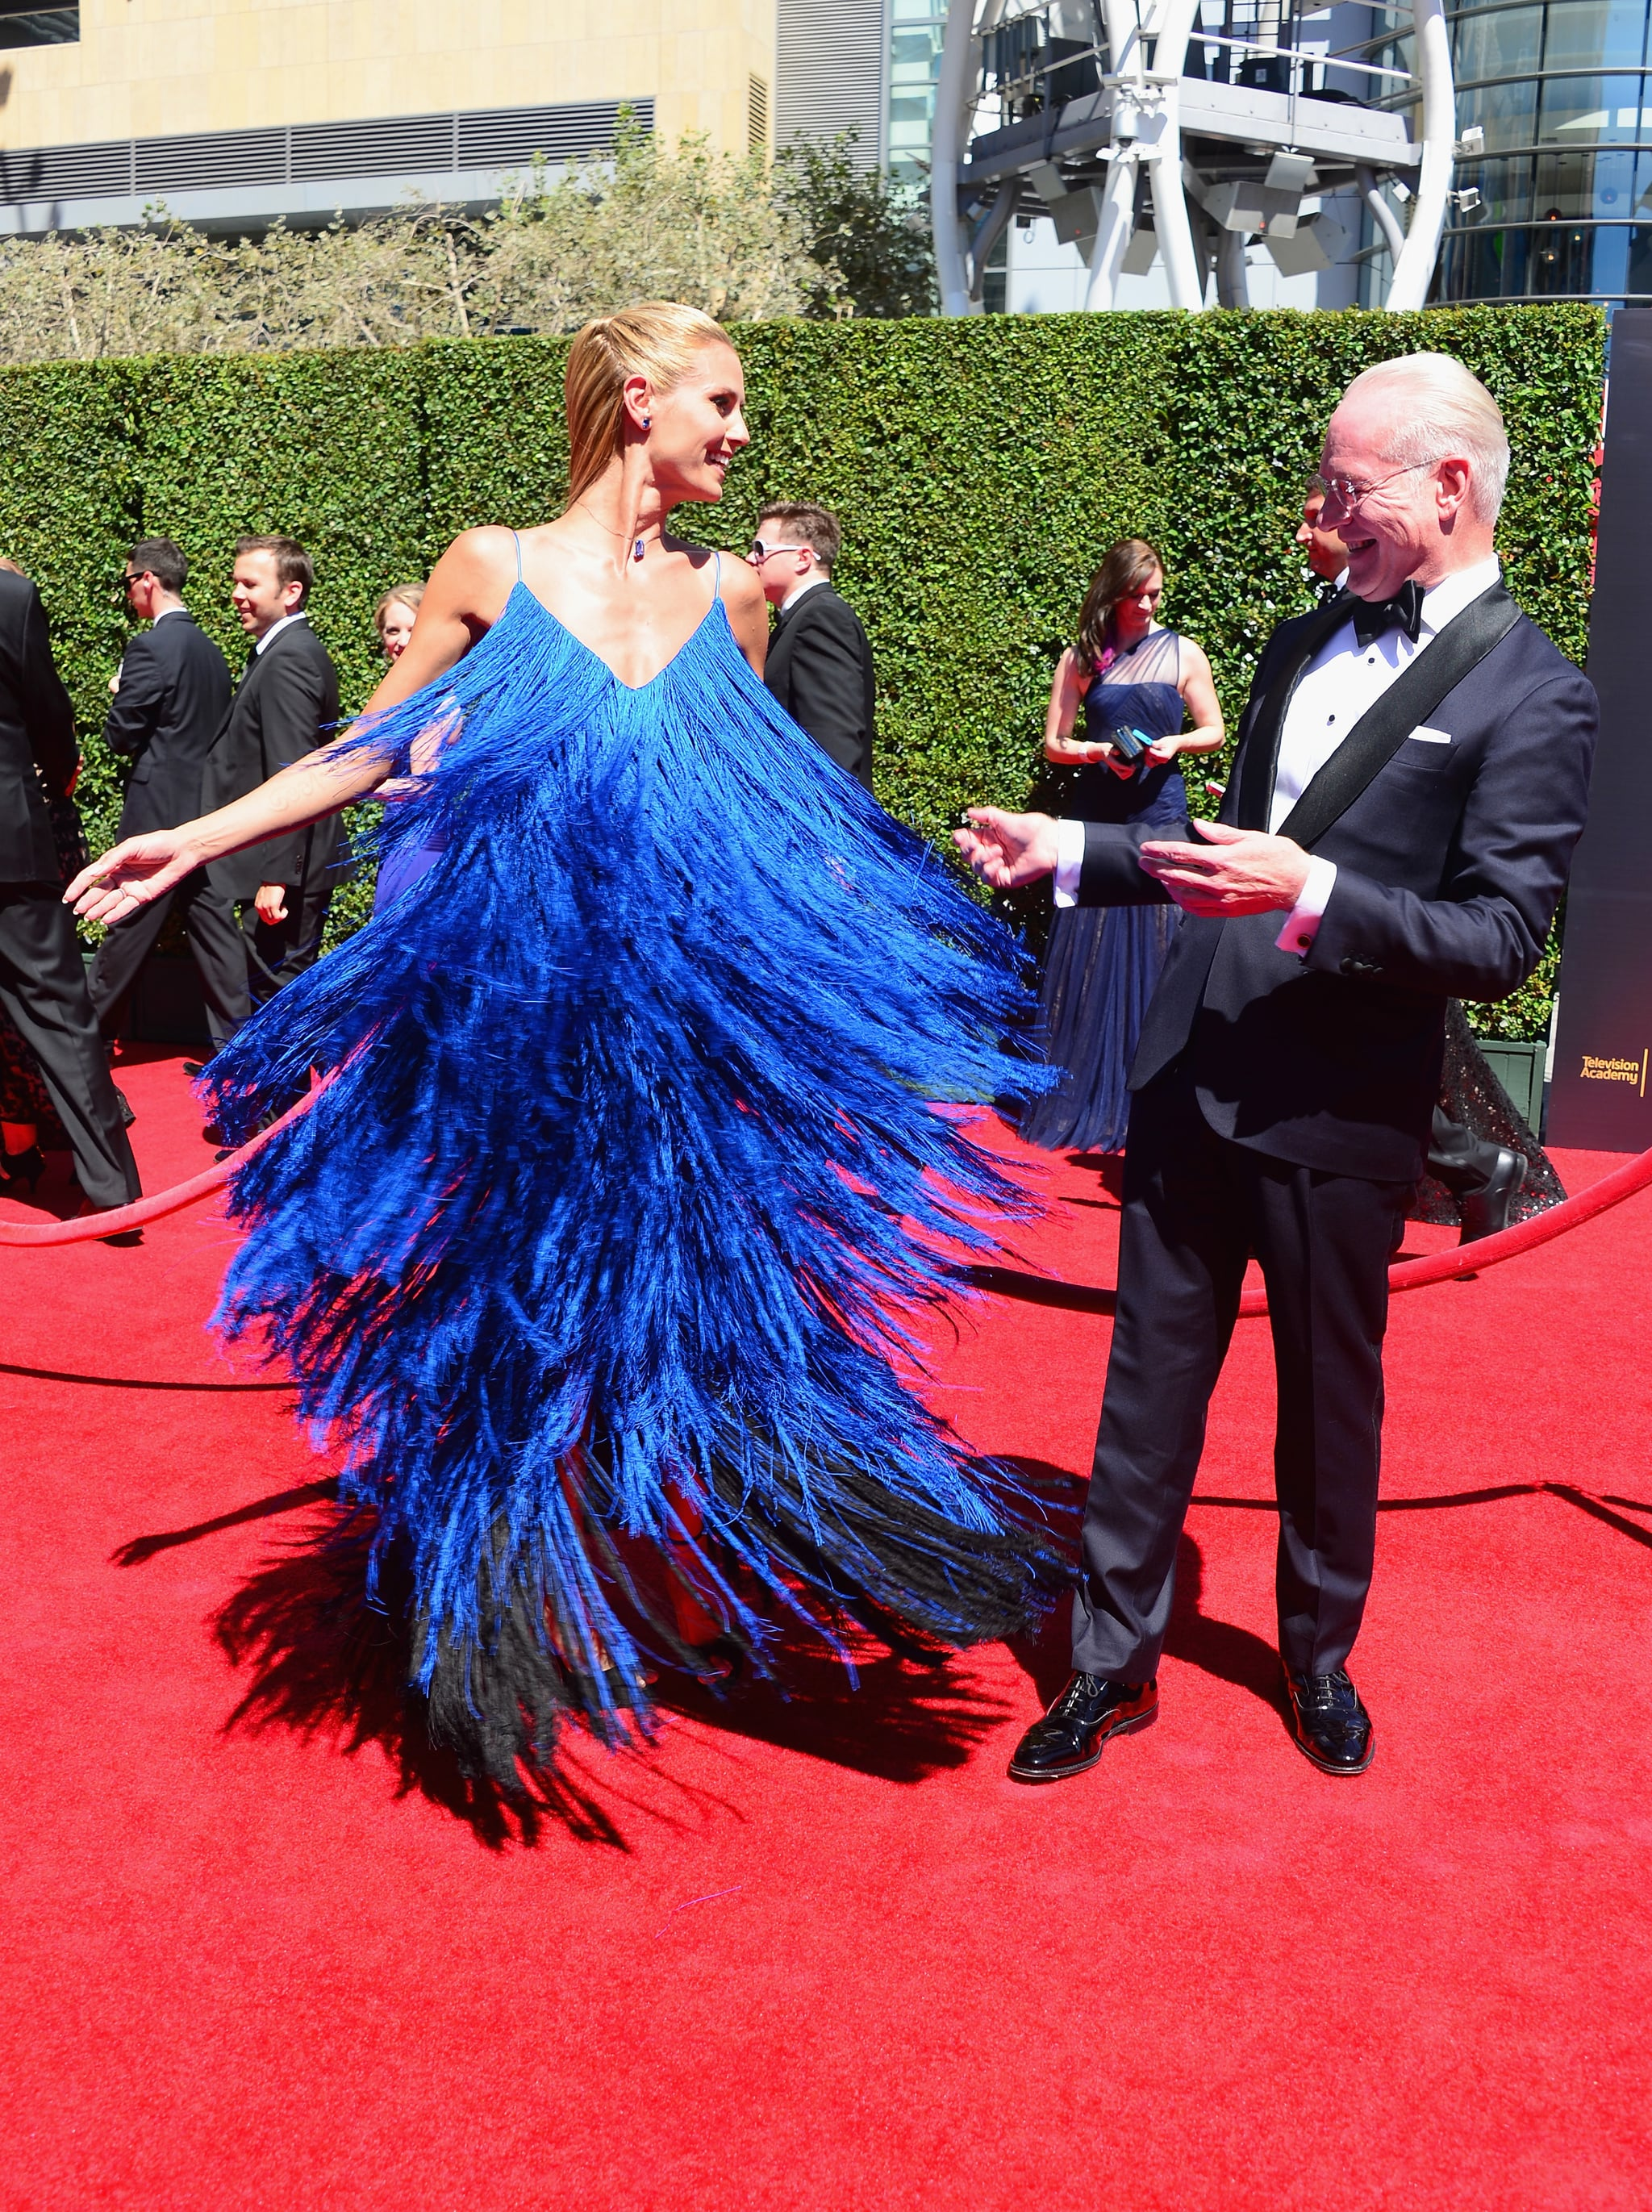 Even Tim Gunn couldn't help but take notice.